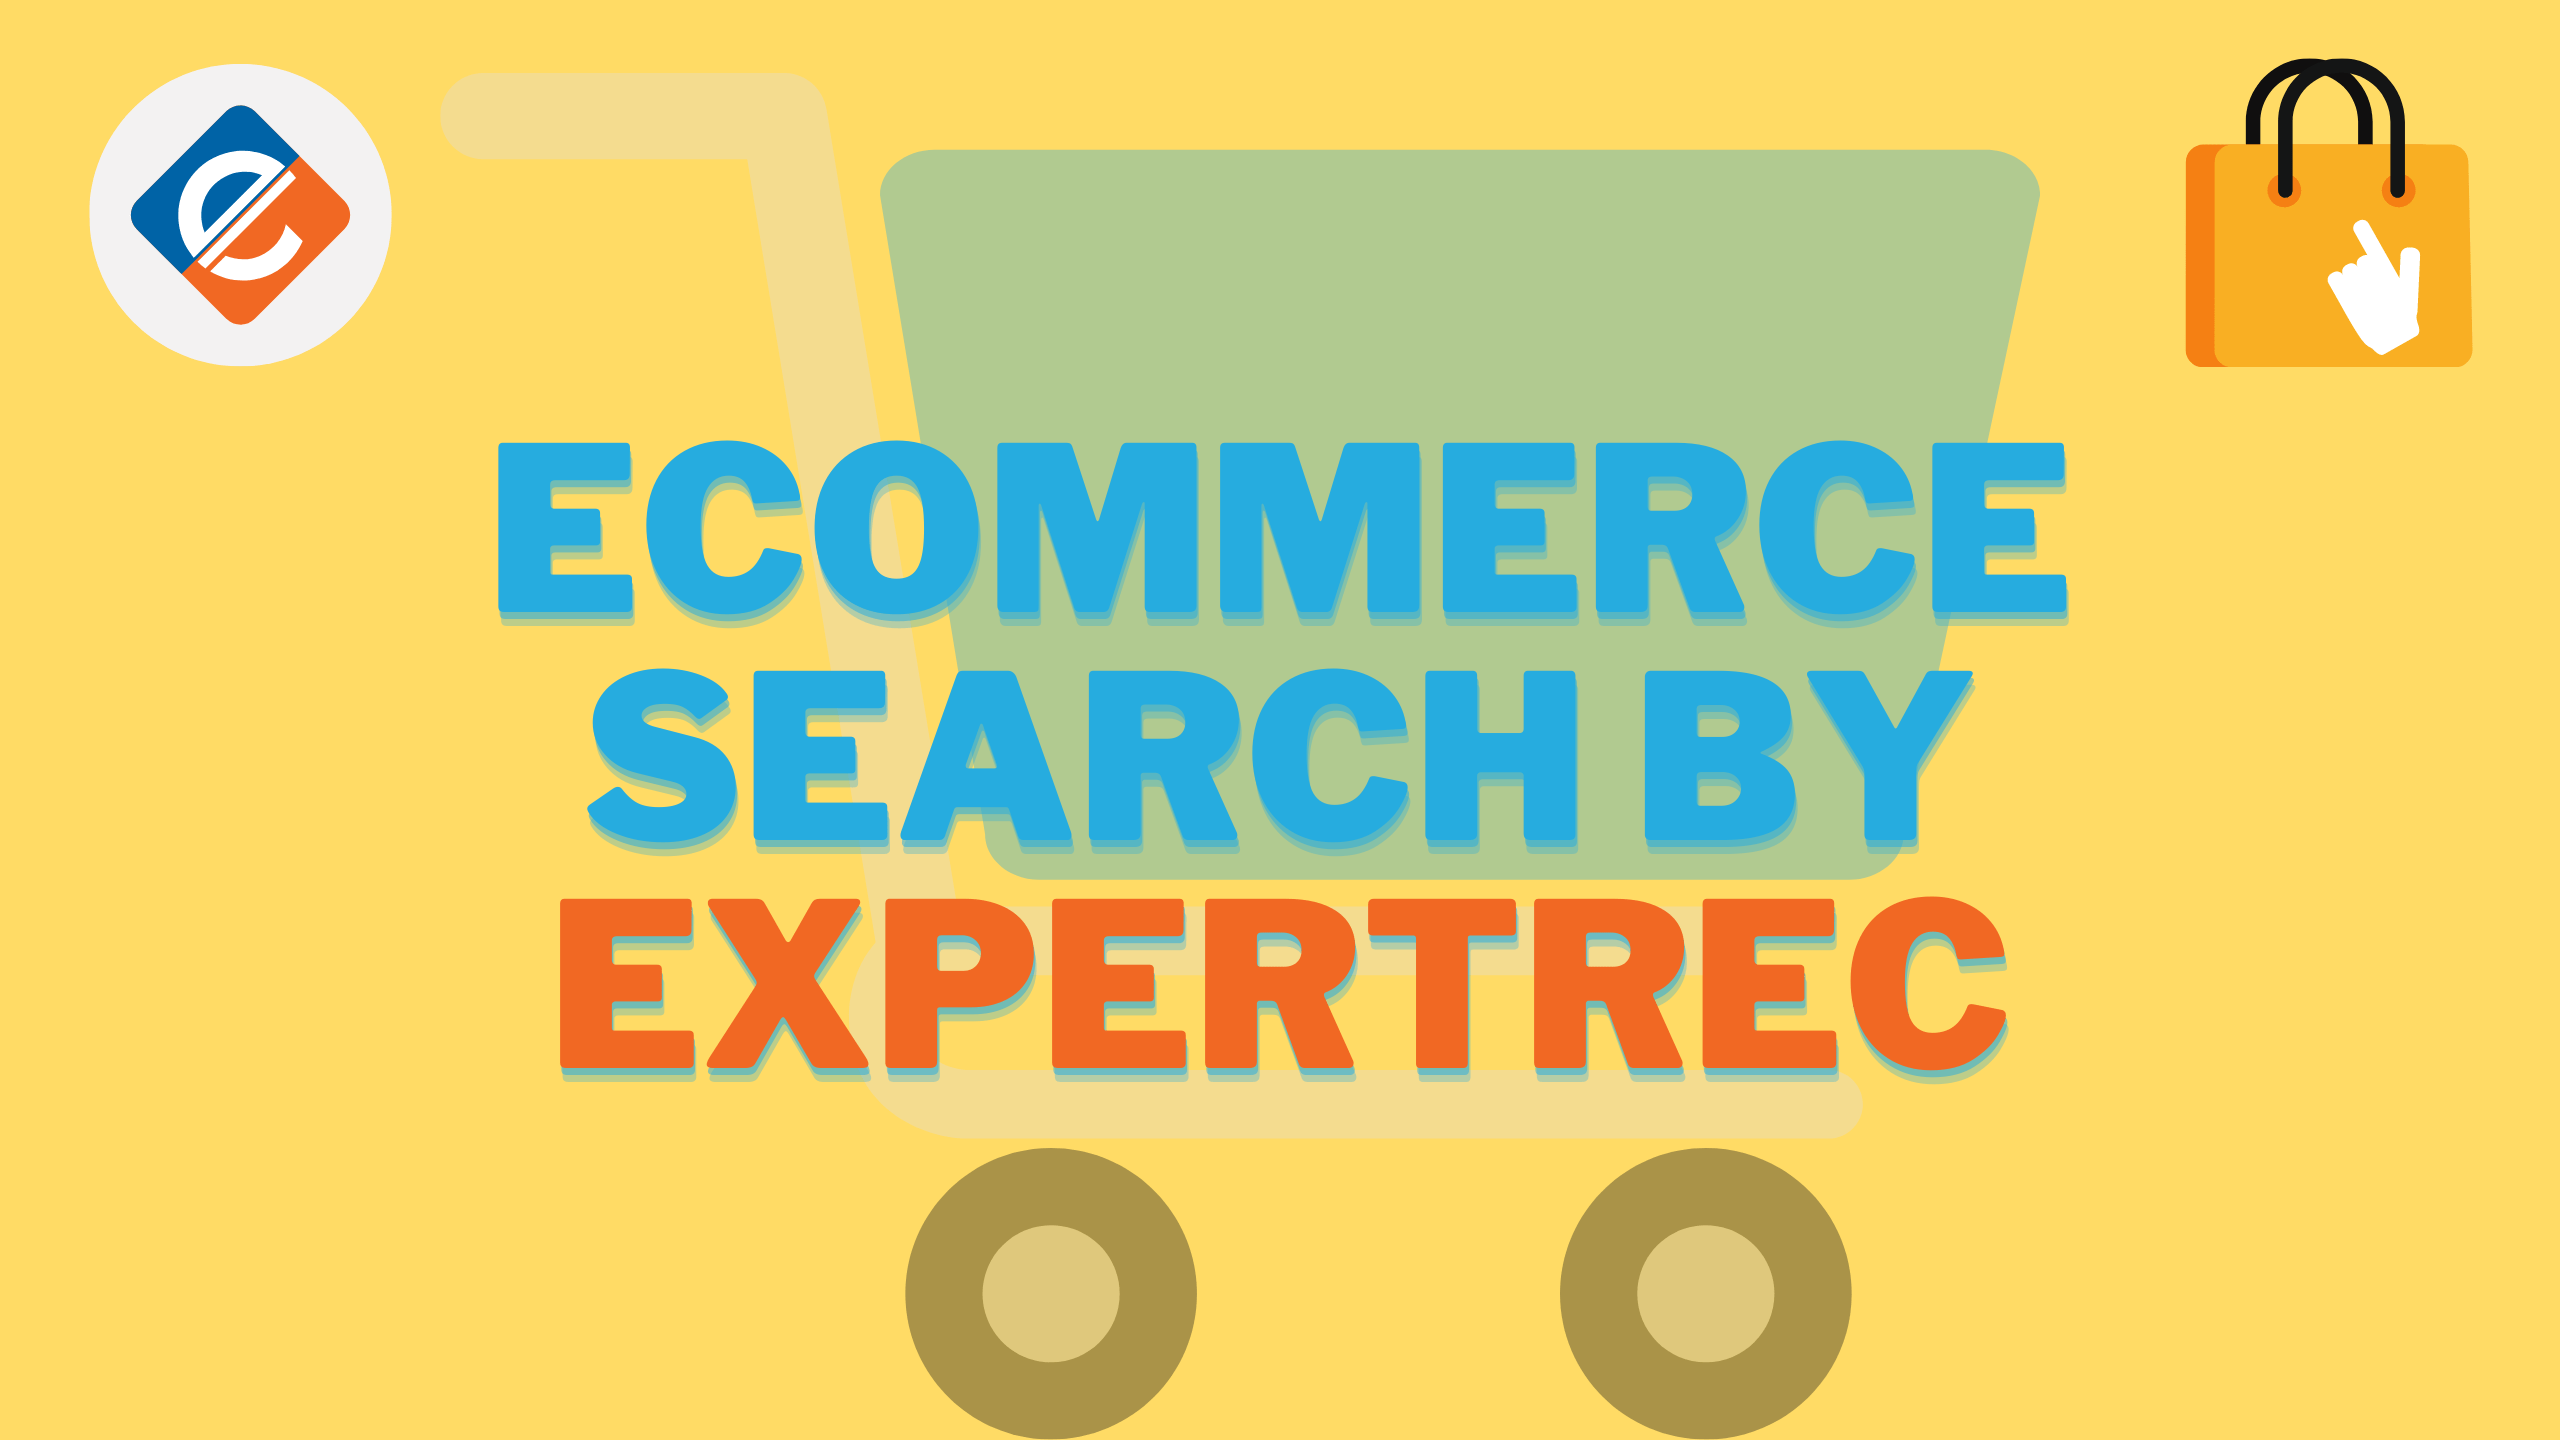 ecommerce search by expertrec